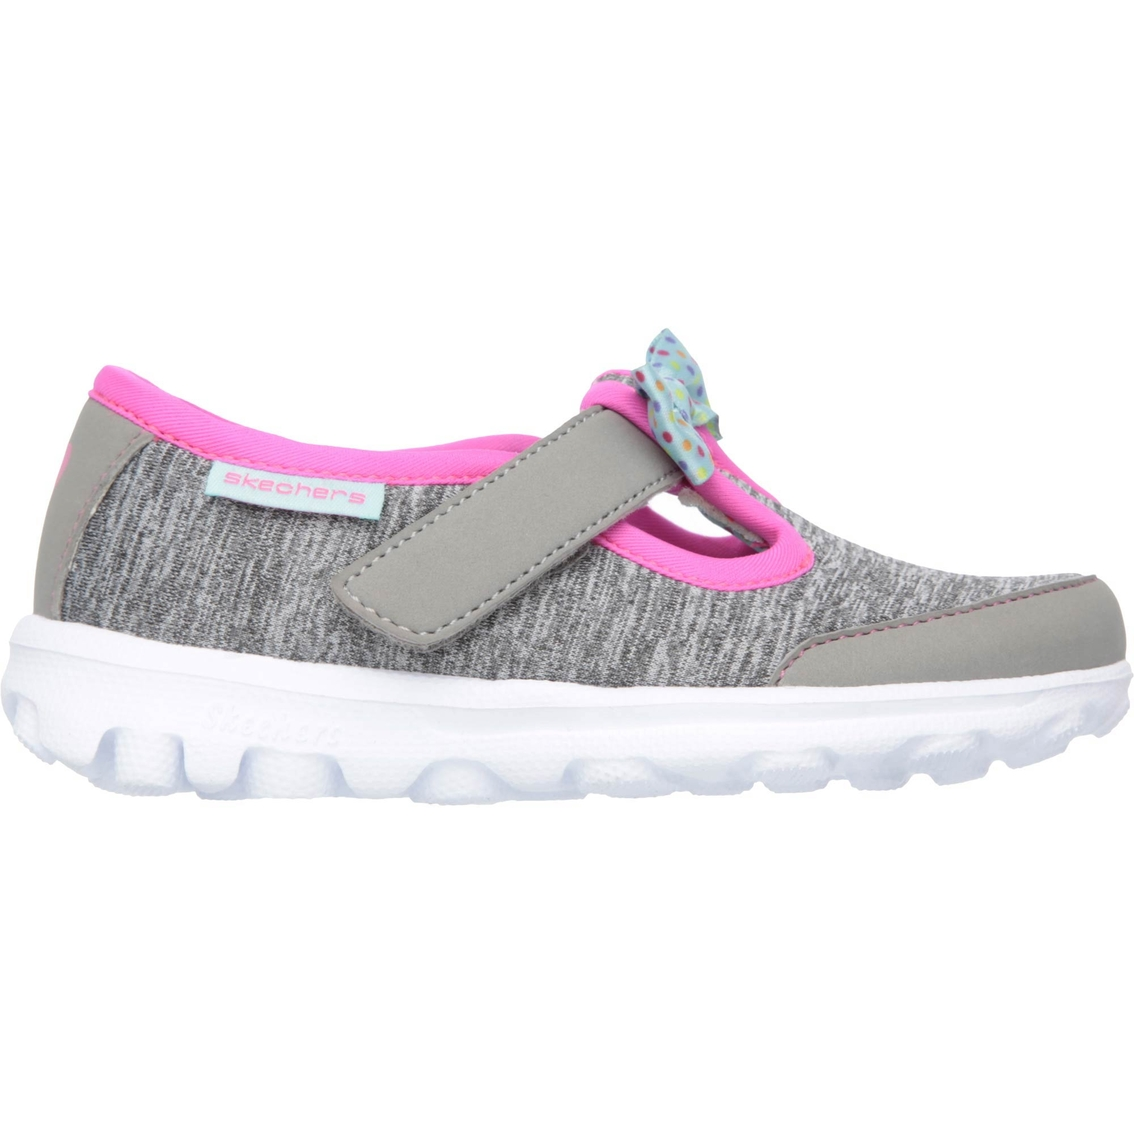 skechers bitty bow canvas slip on walking shoes